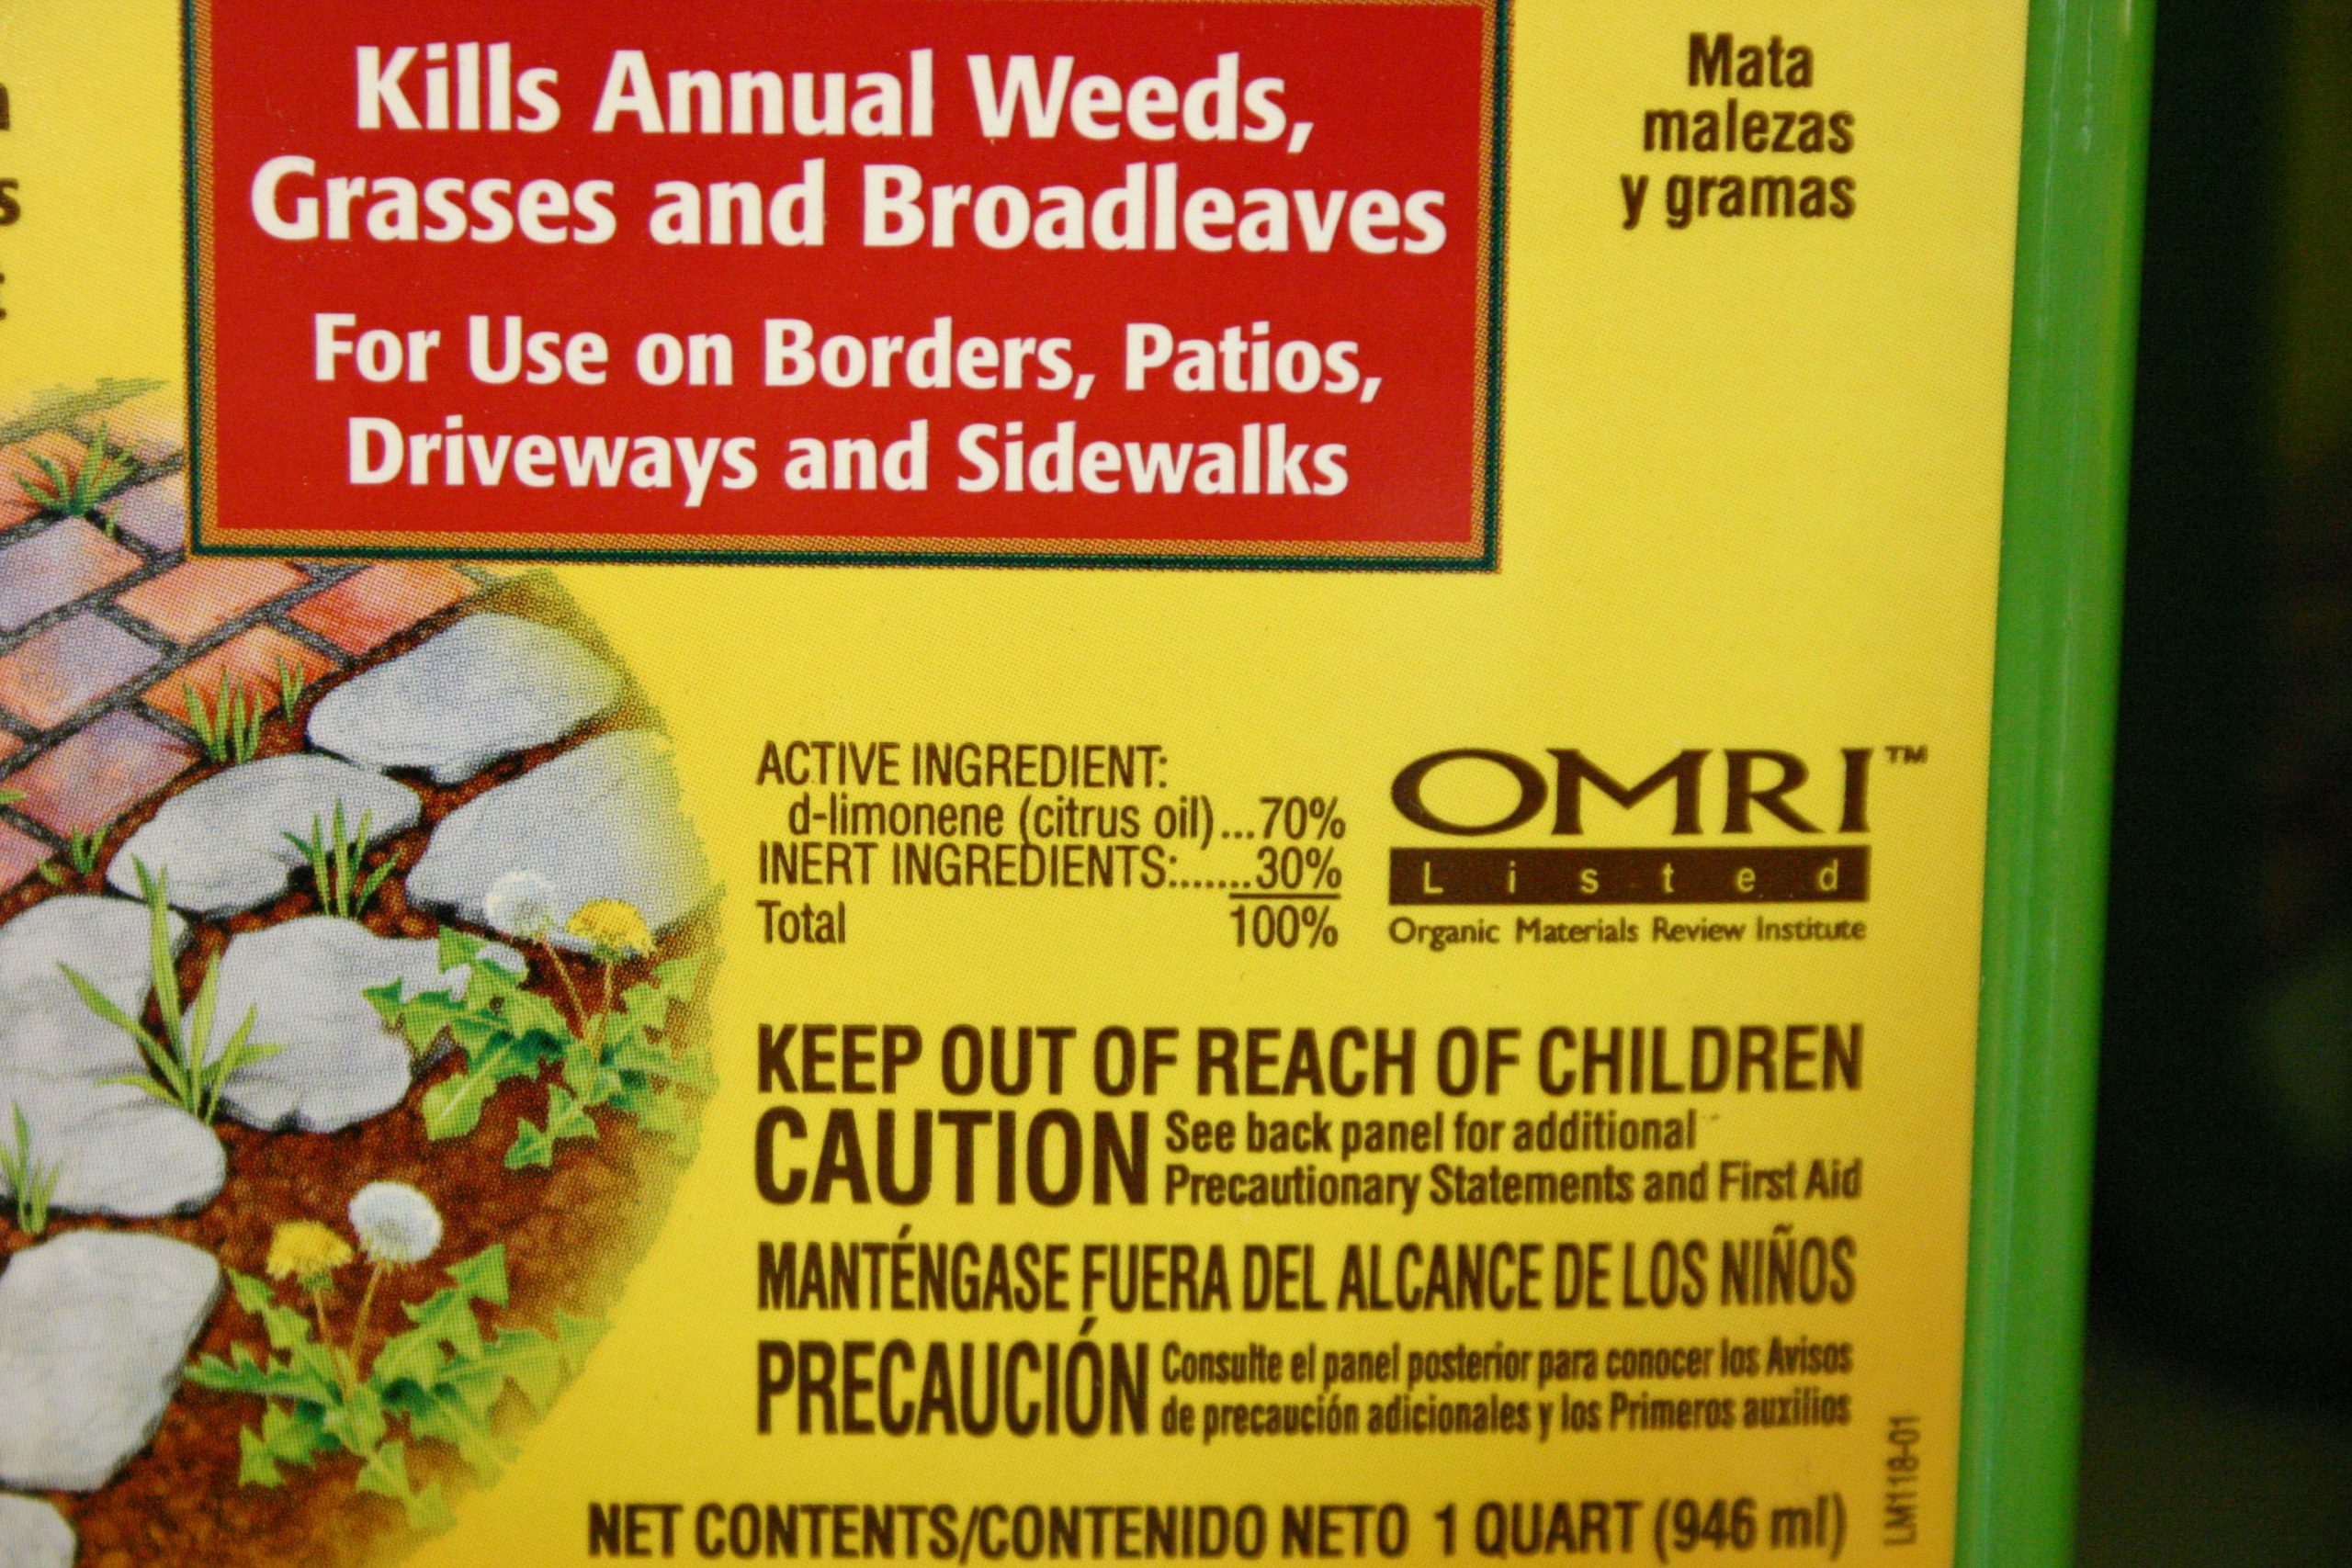 this product has worked well for me, killing small weeds